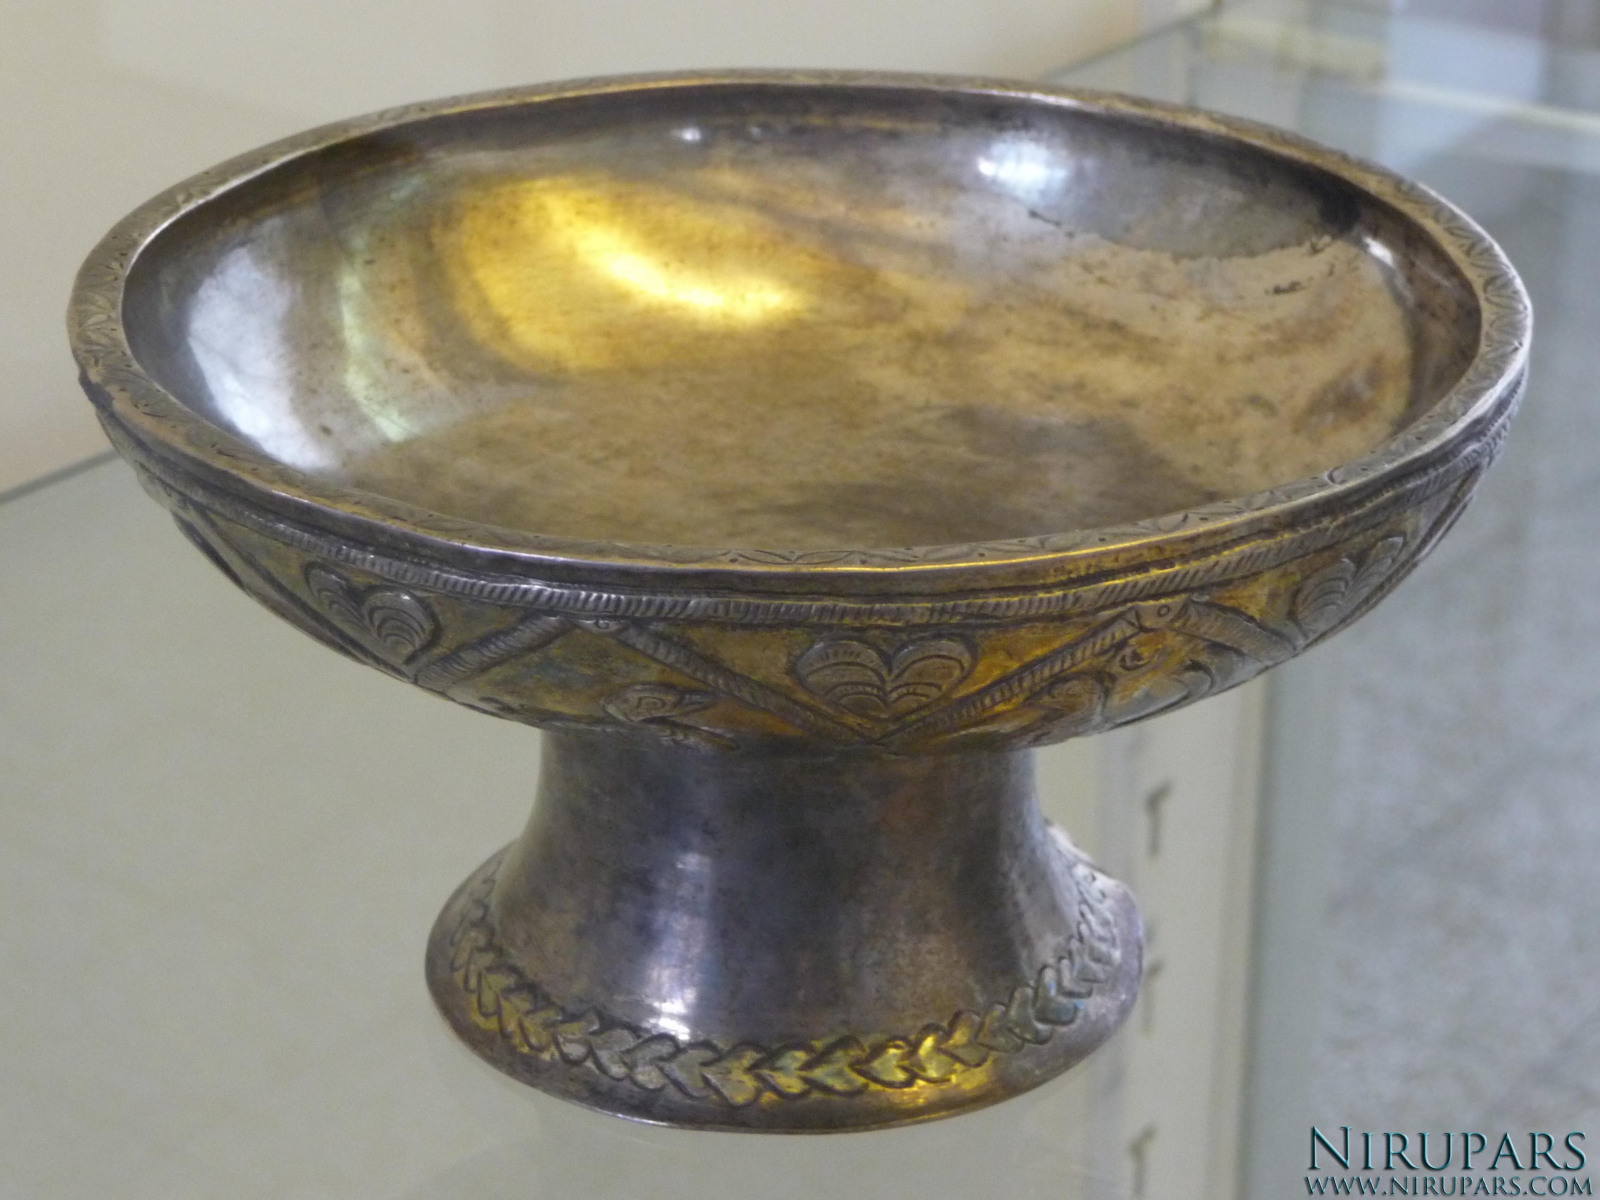 National Museum of Iran - Silver Gold Bowl